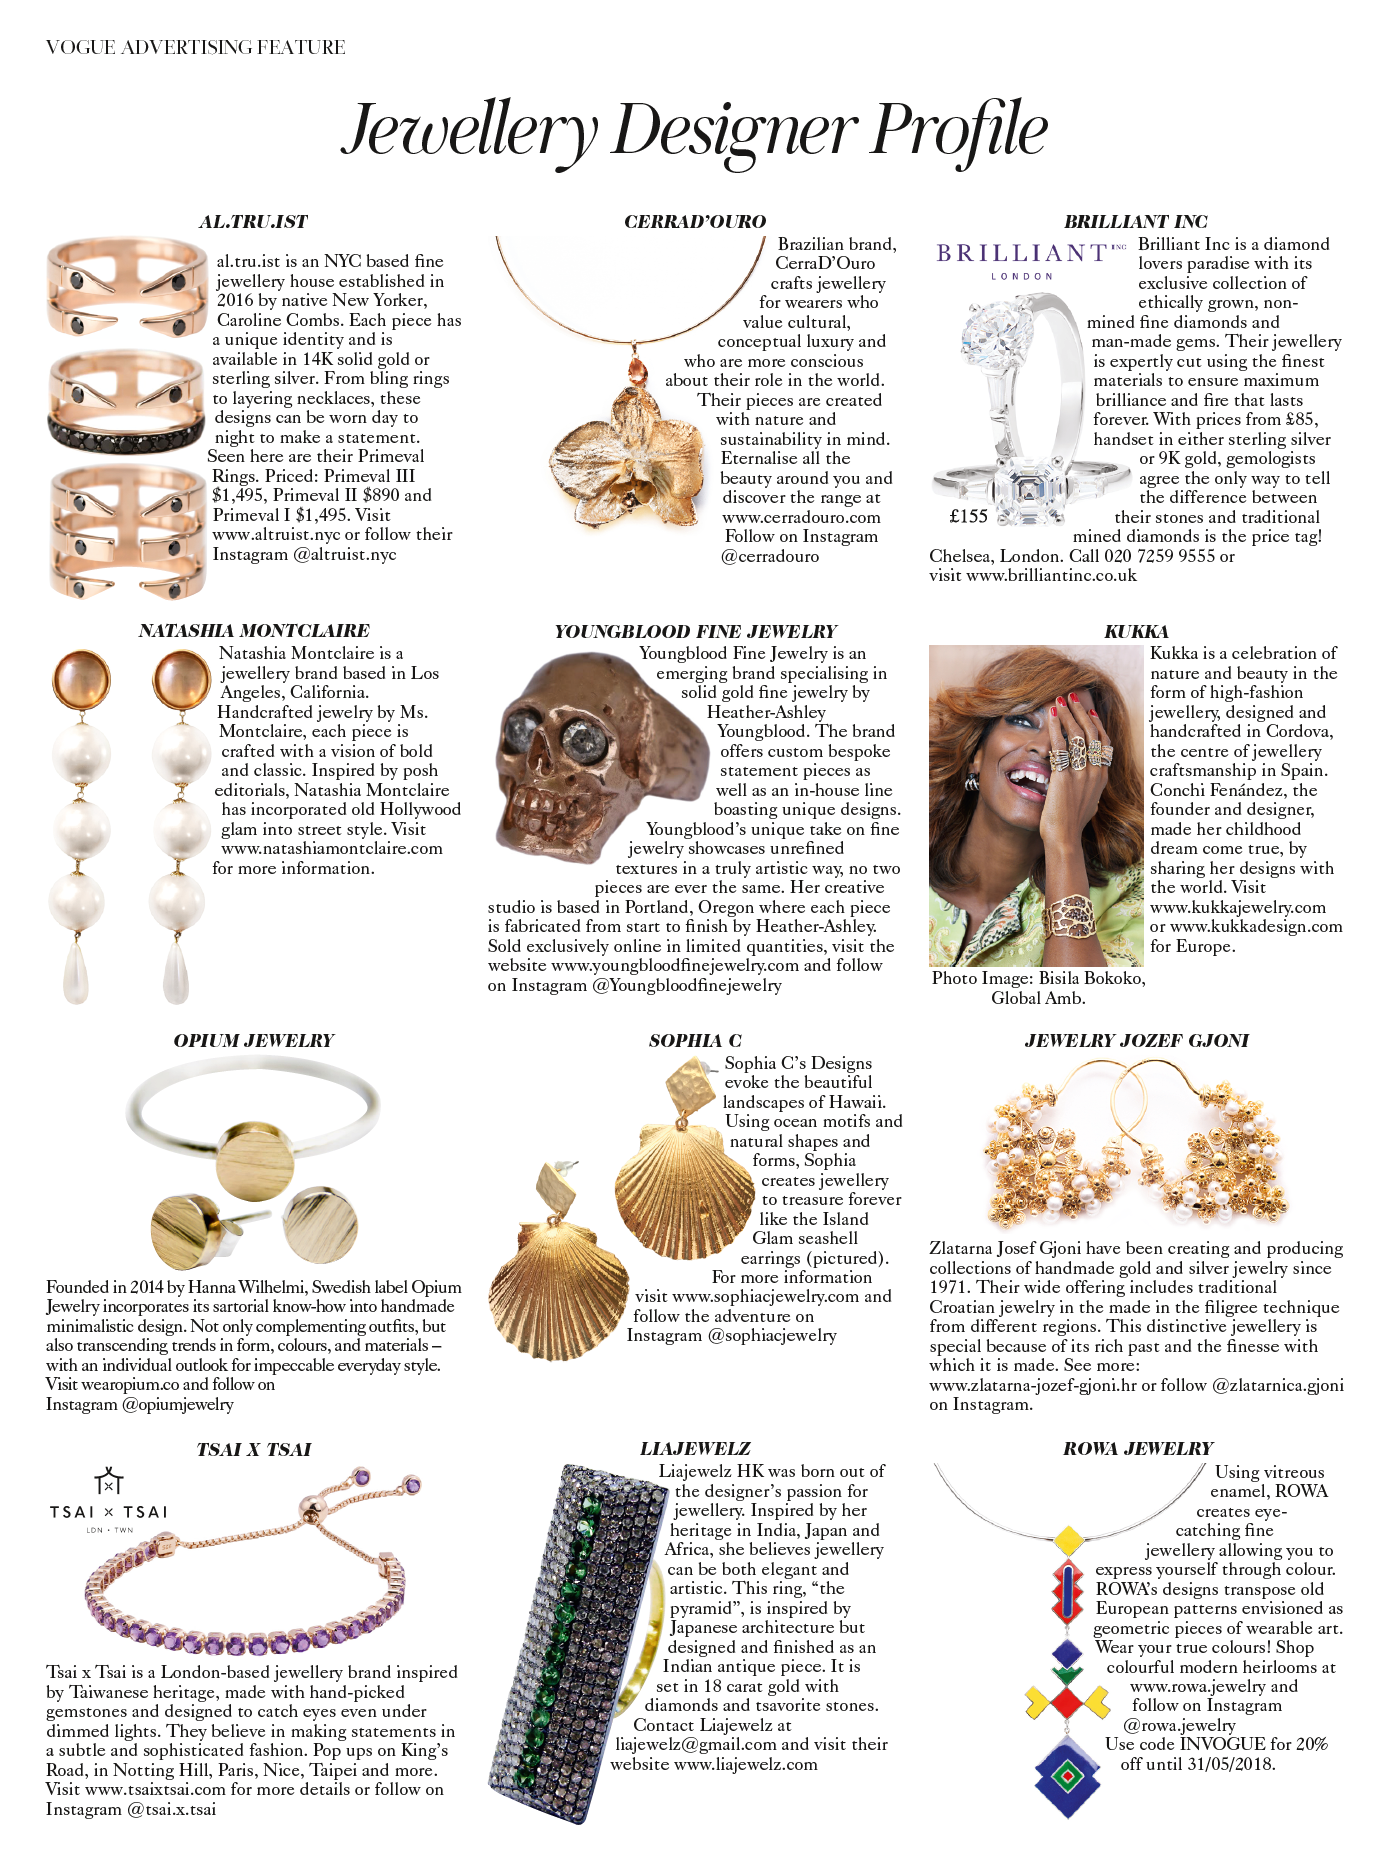 opium jewelry featured in vogue uk april 2018